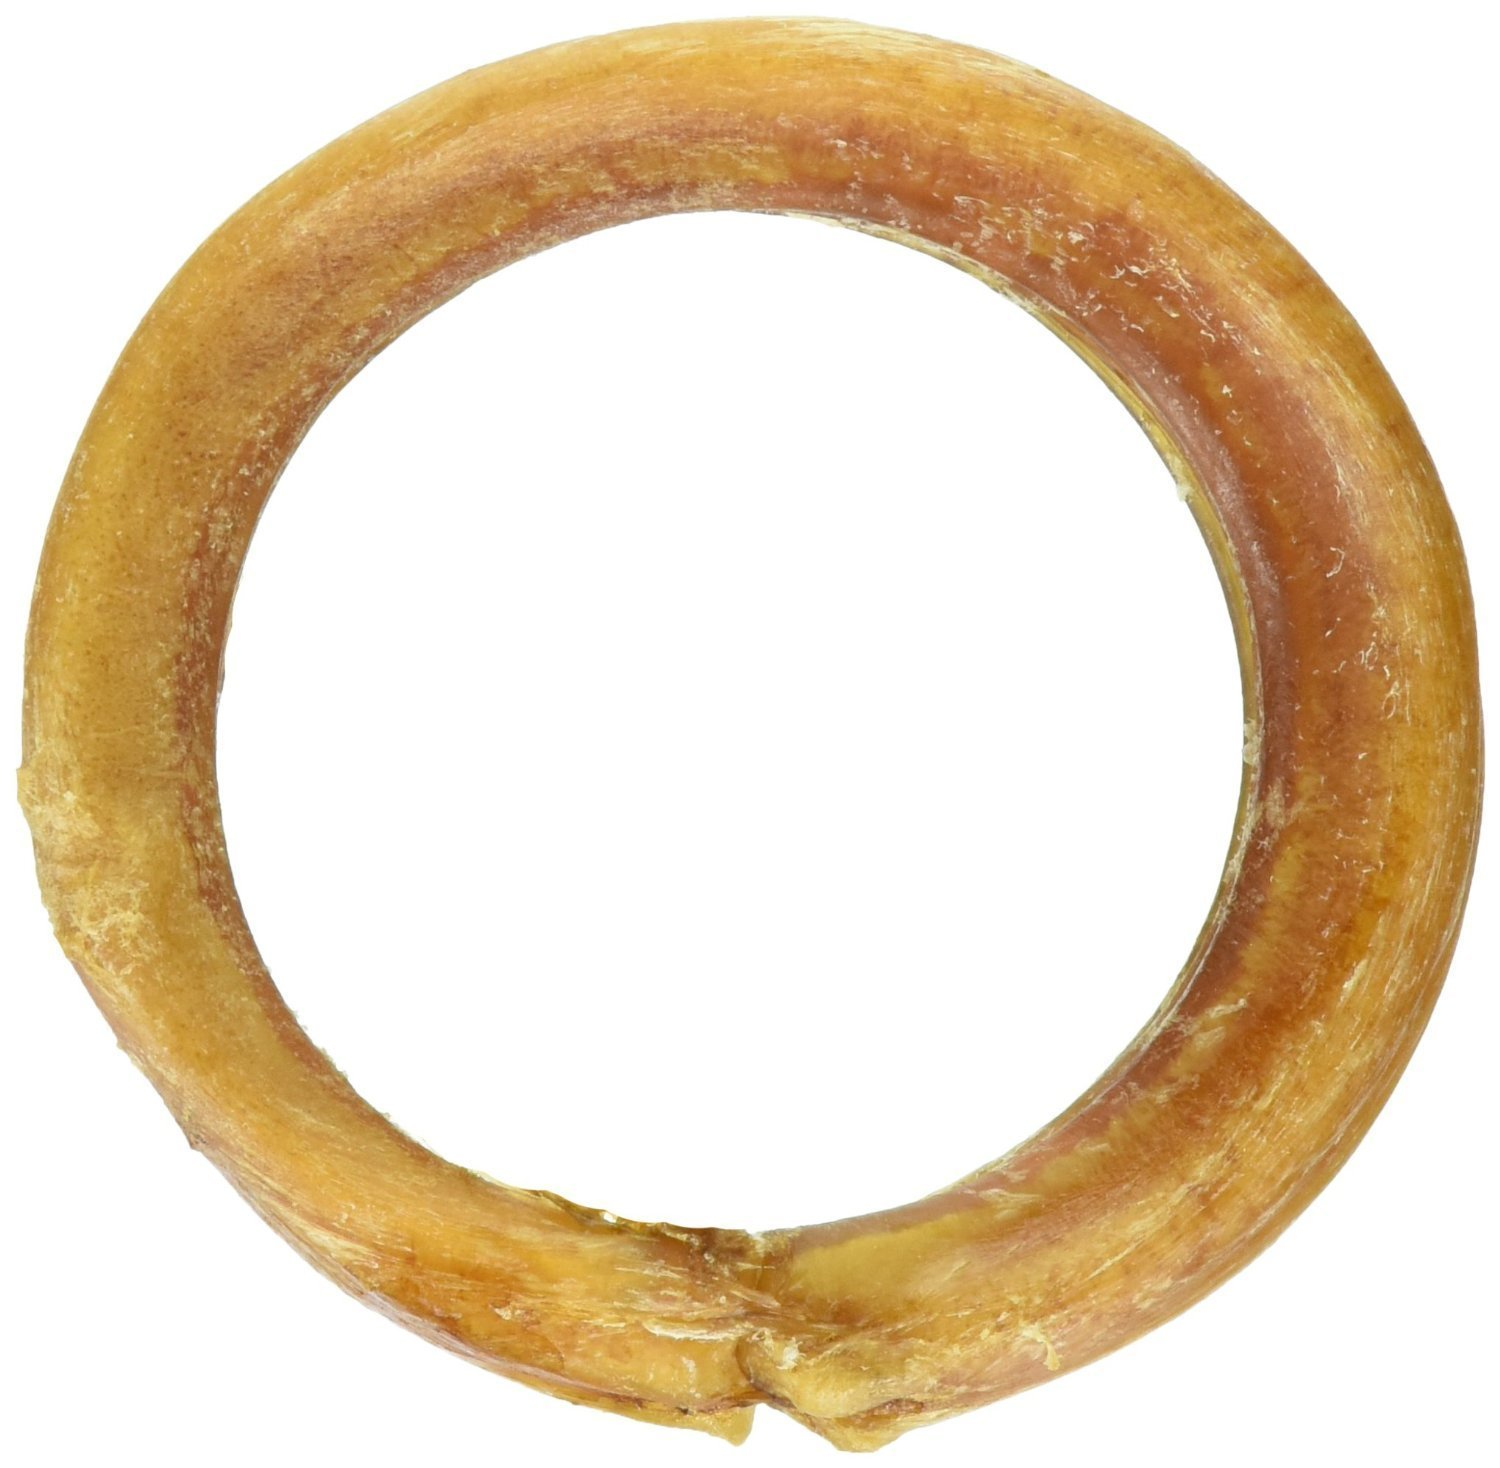 Bully Stick Rings for Dogs (25 Pack) - Natural Bulk Dog Dental Treats & Healthy Chew, Best Thick Low-odor Pizzle Stix, Free Range & Grass Fed Beef